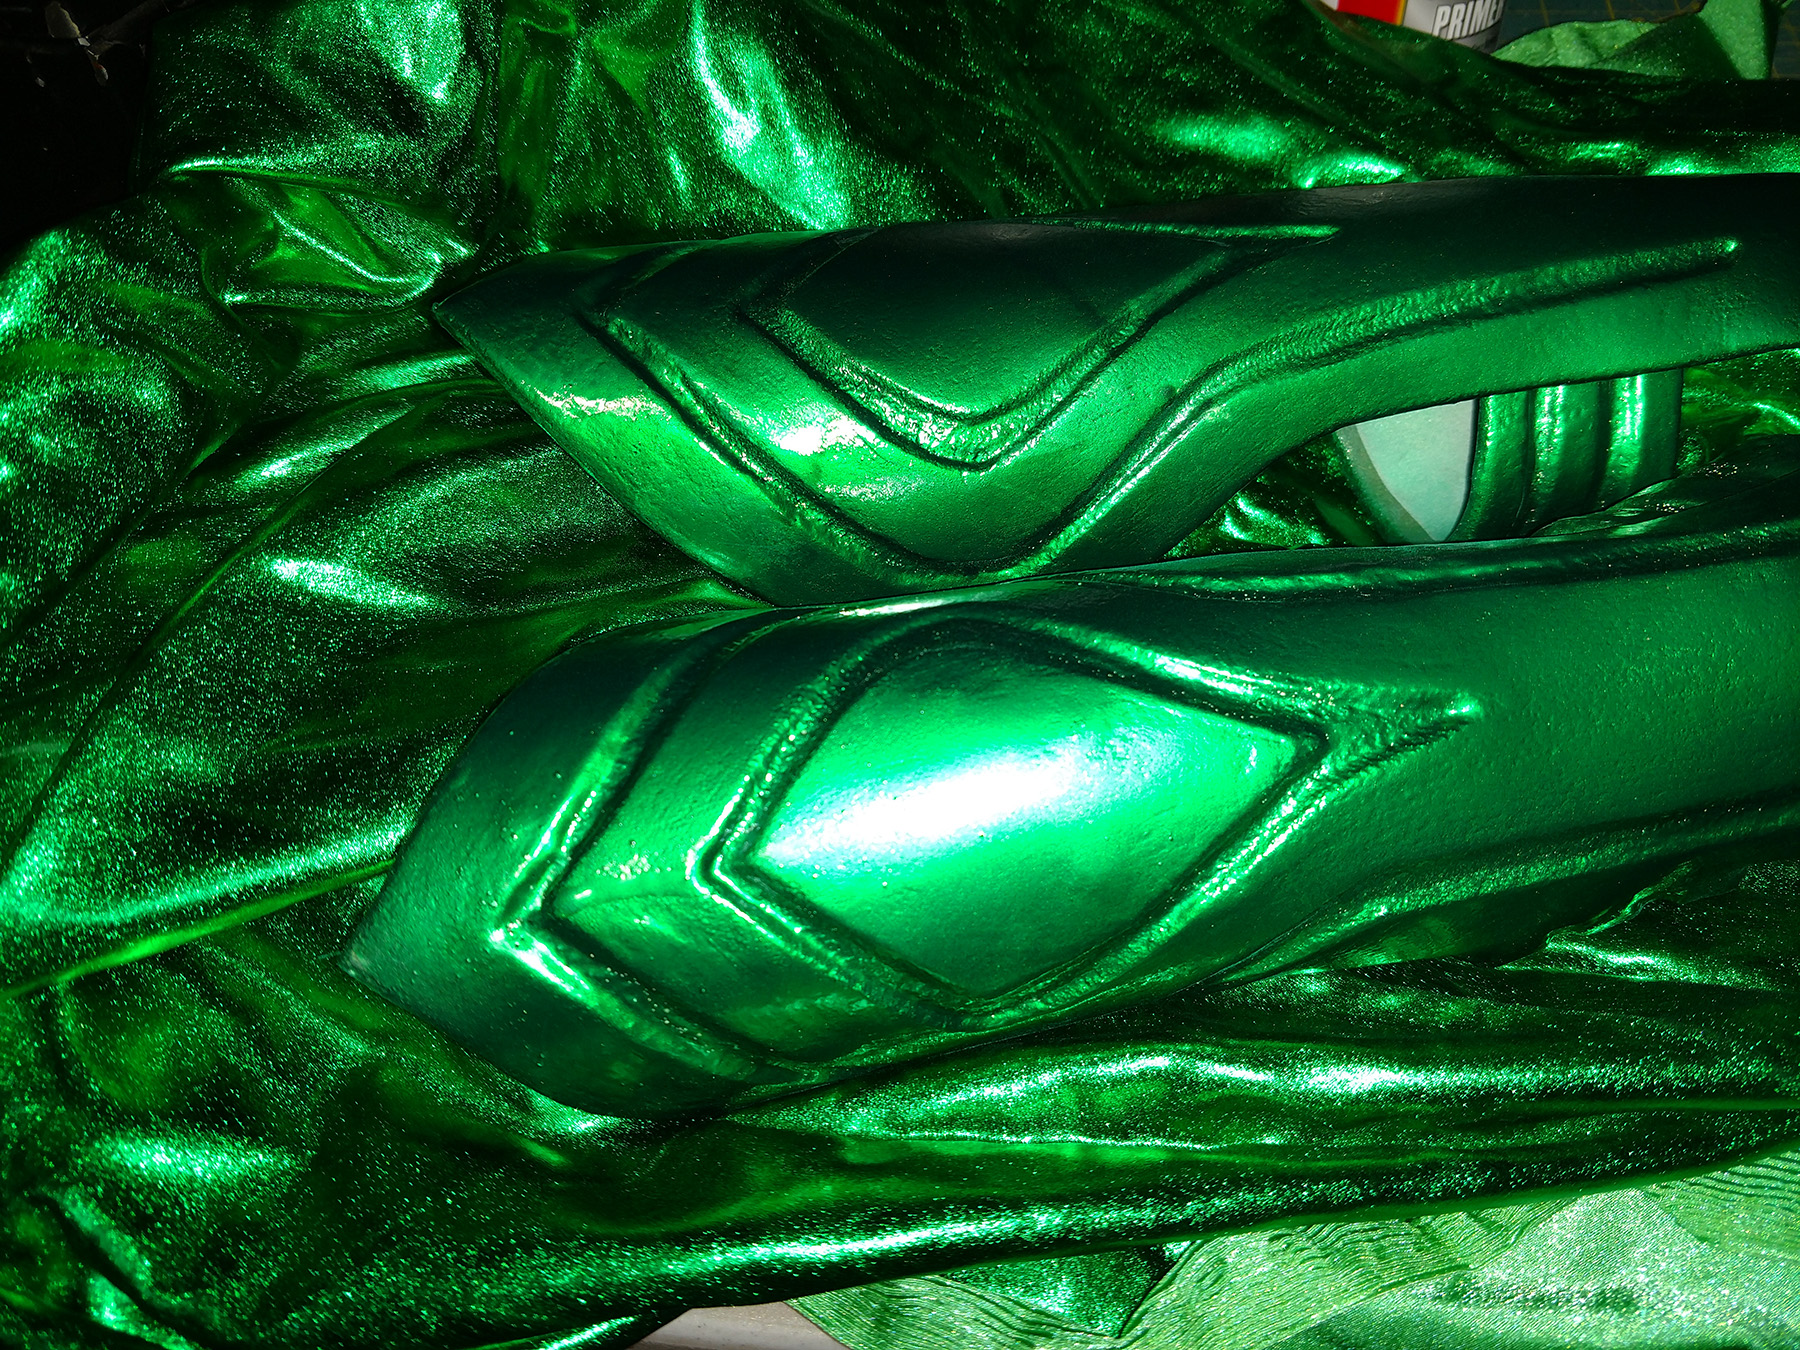 A pair of metallic green Hela bracers are shown against a pile of matching metallic green spandex.